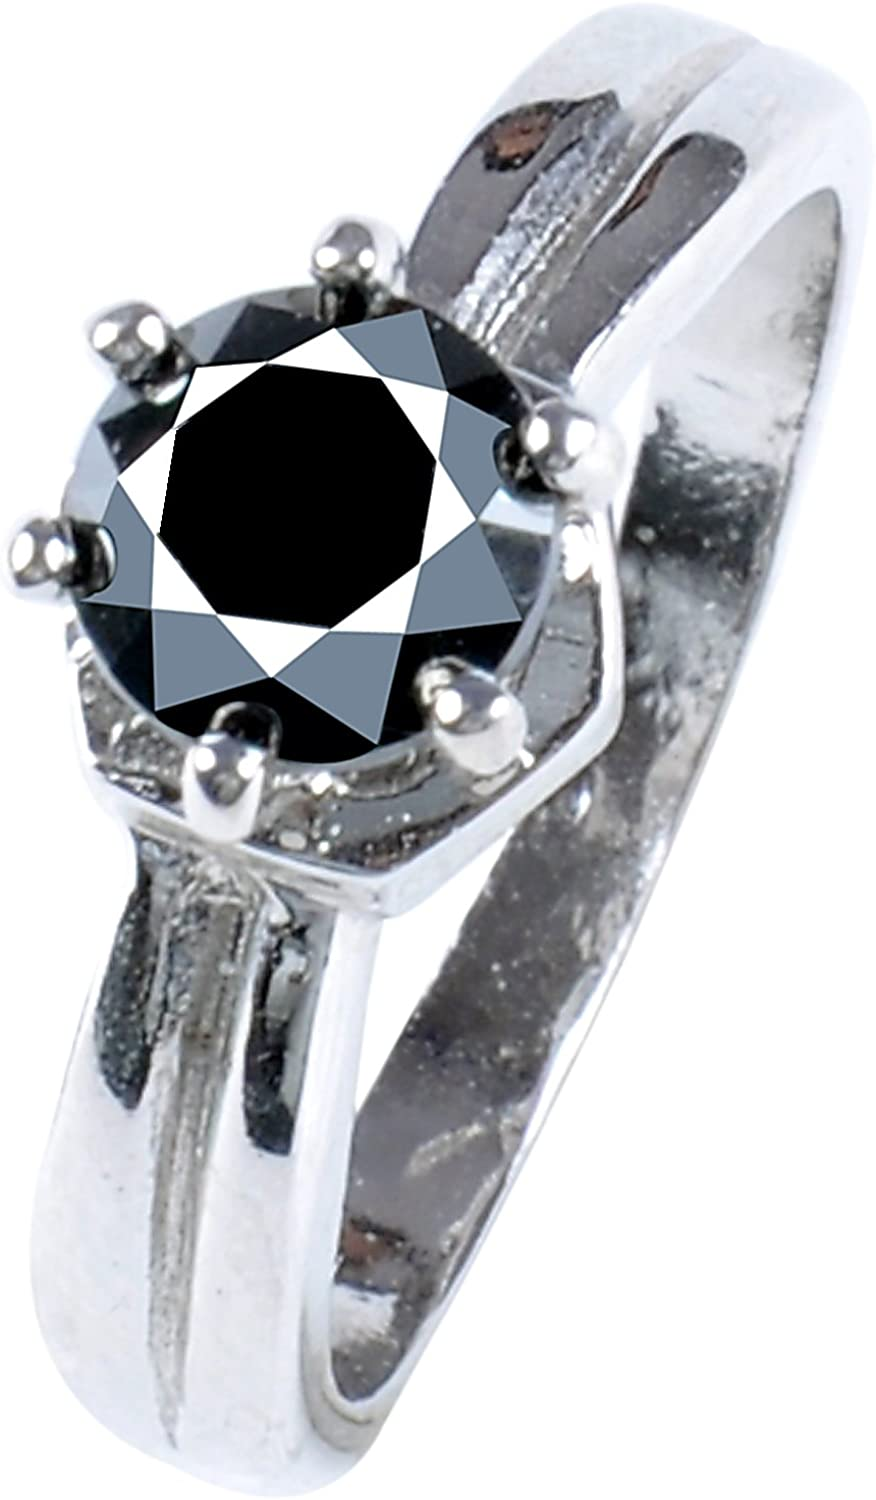 RINGJEWEL 0.93 ct AAA Round Cut Real Moissanite Solitaire Engagement /& Wedding Ring Black Color Size 7